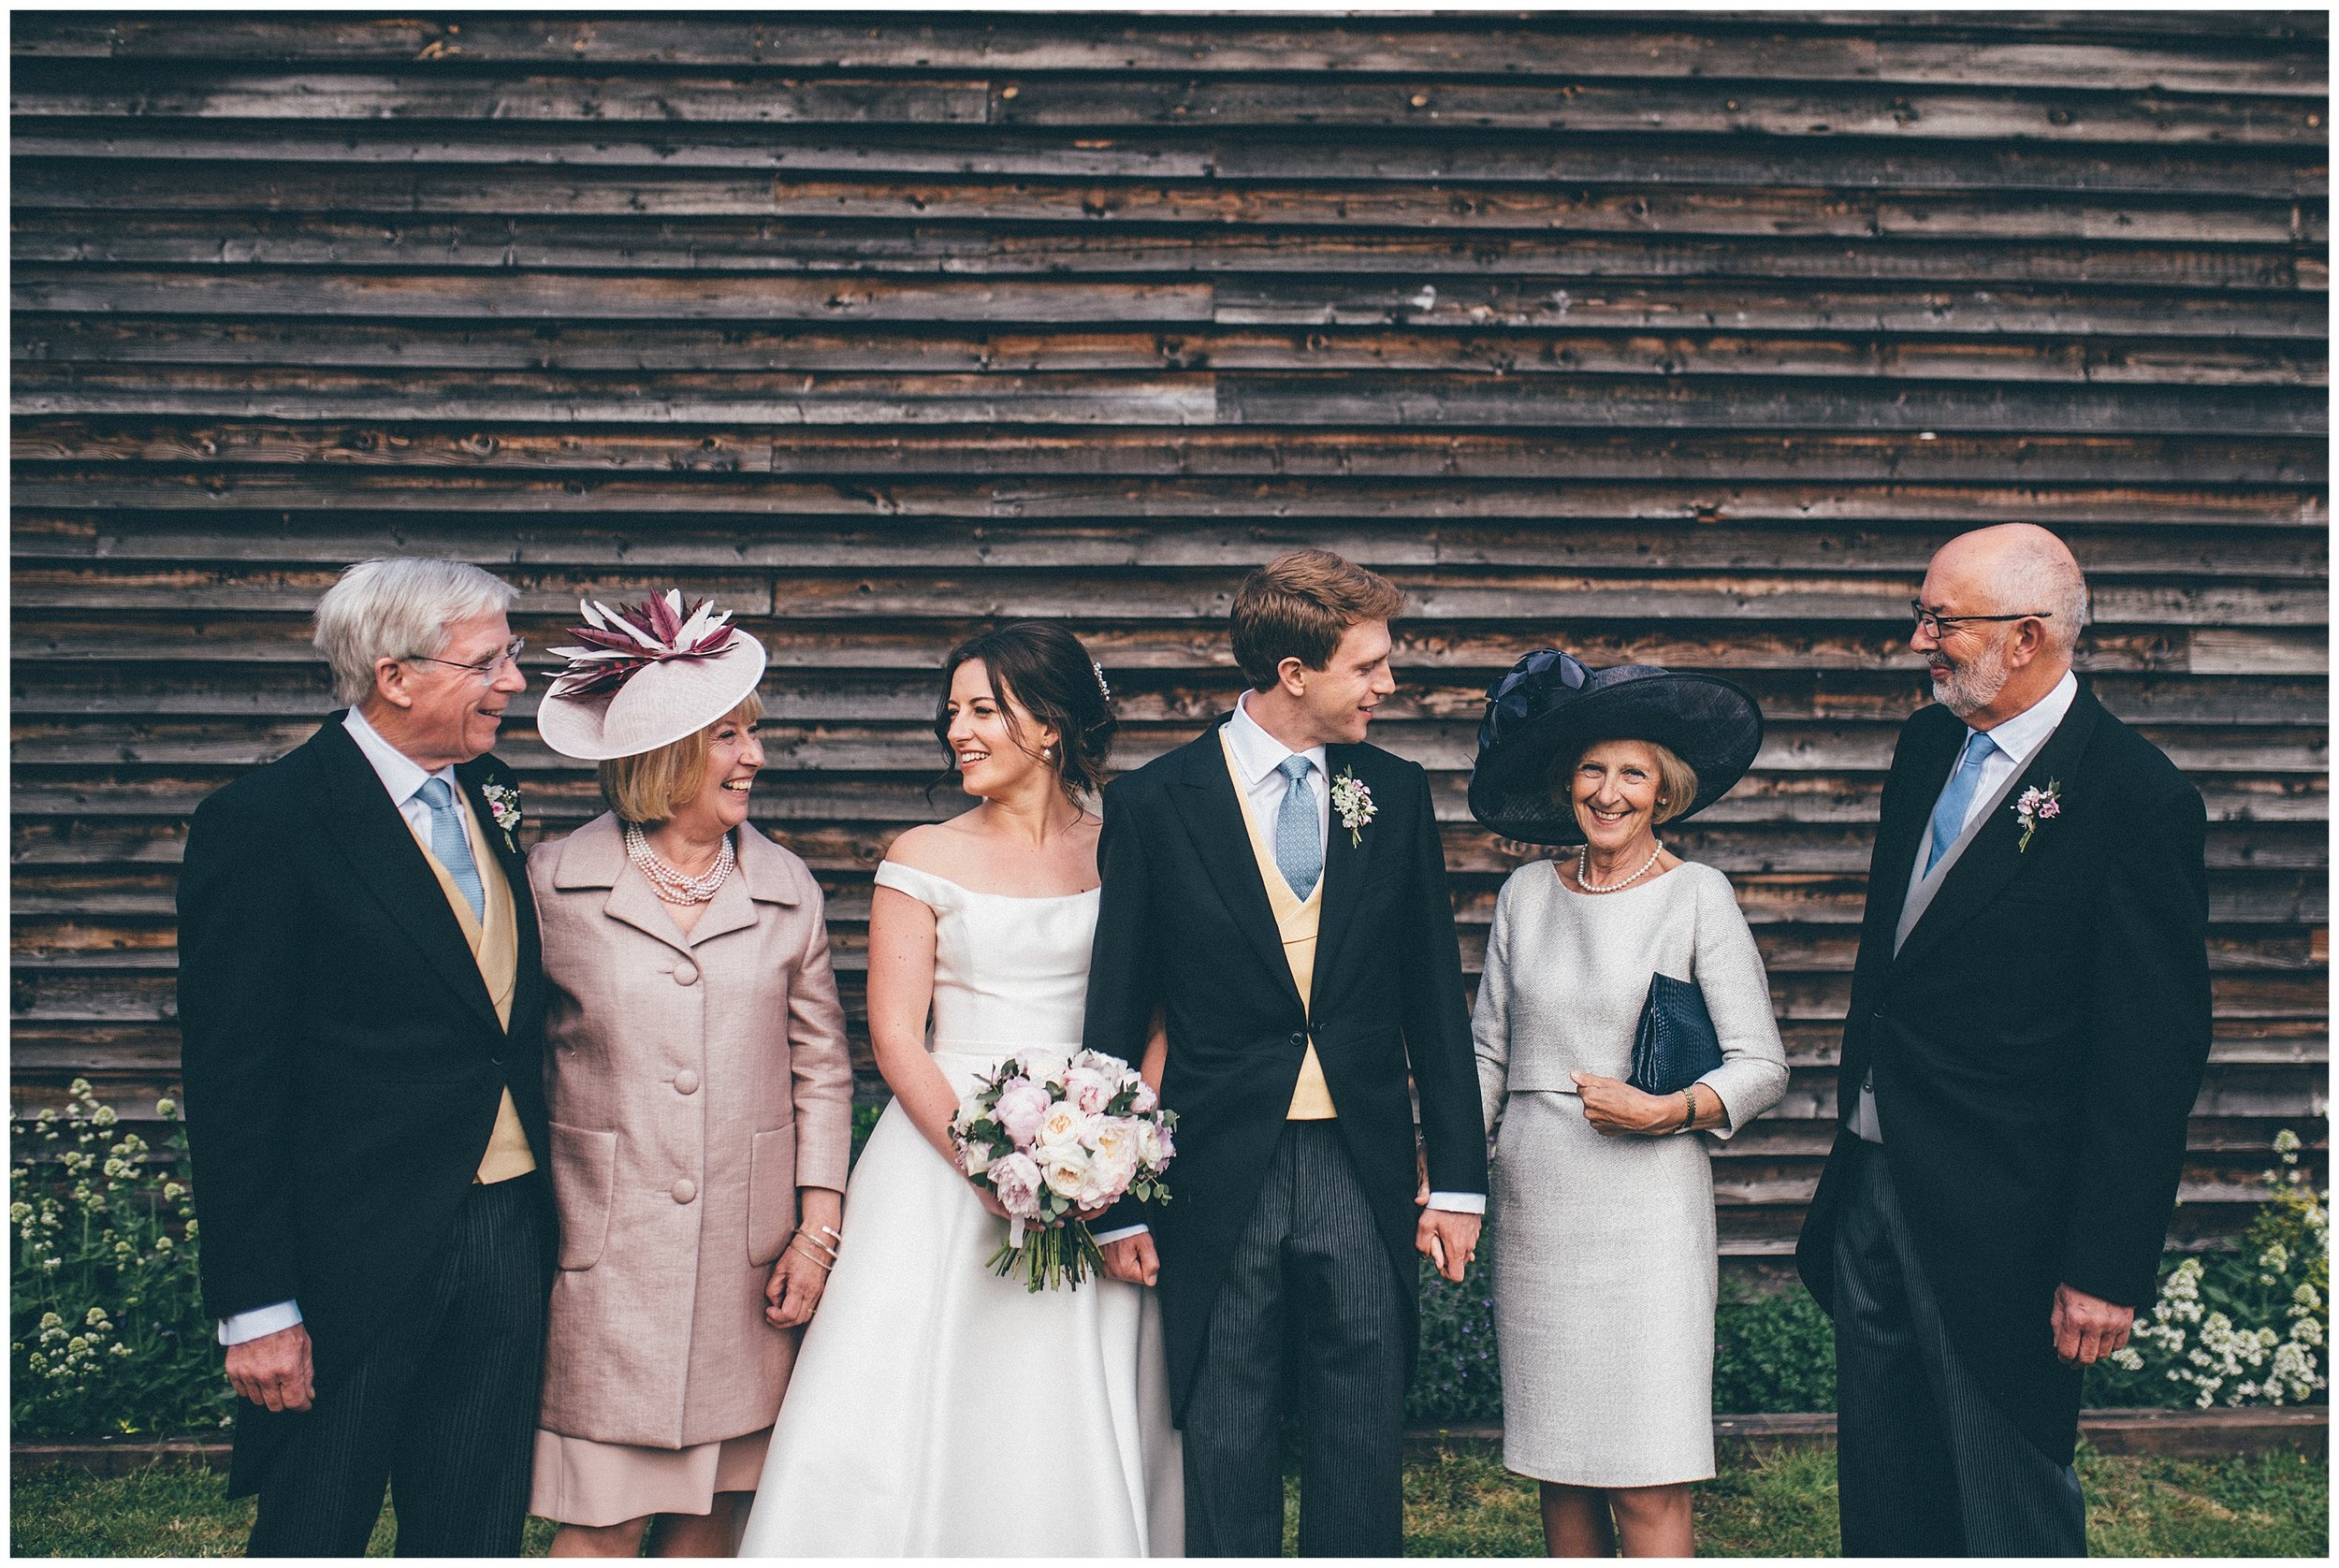 Family photograph at Henham Park wedding barns in Southwold.